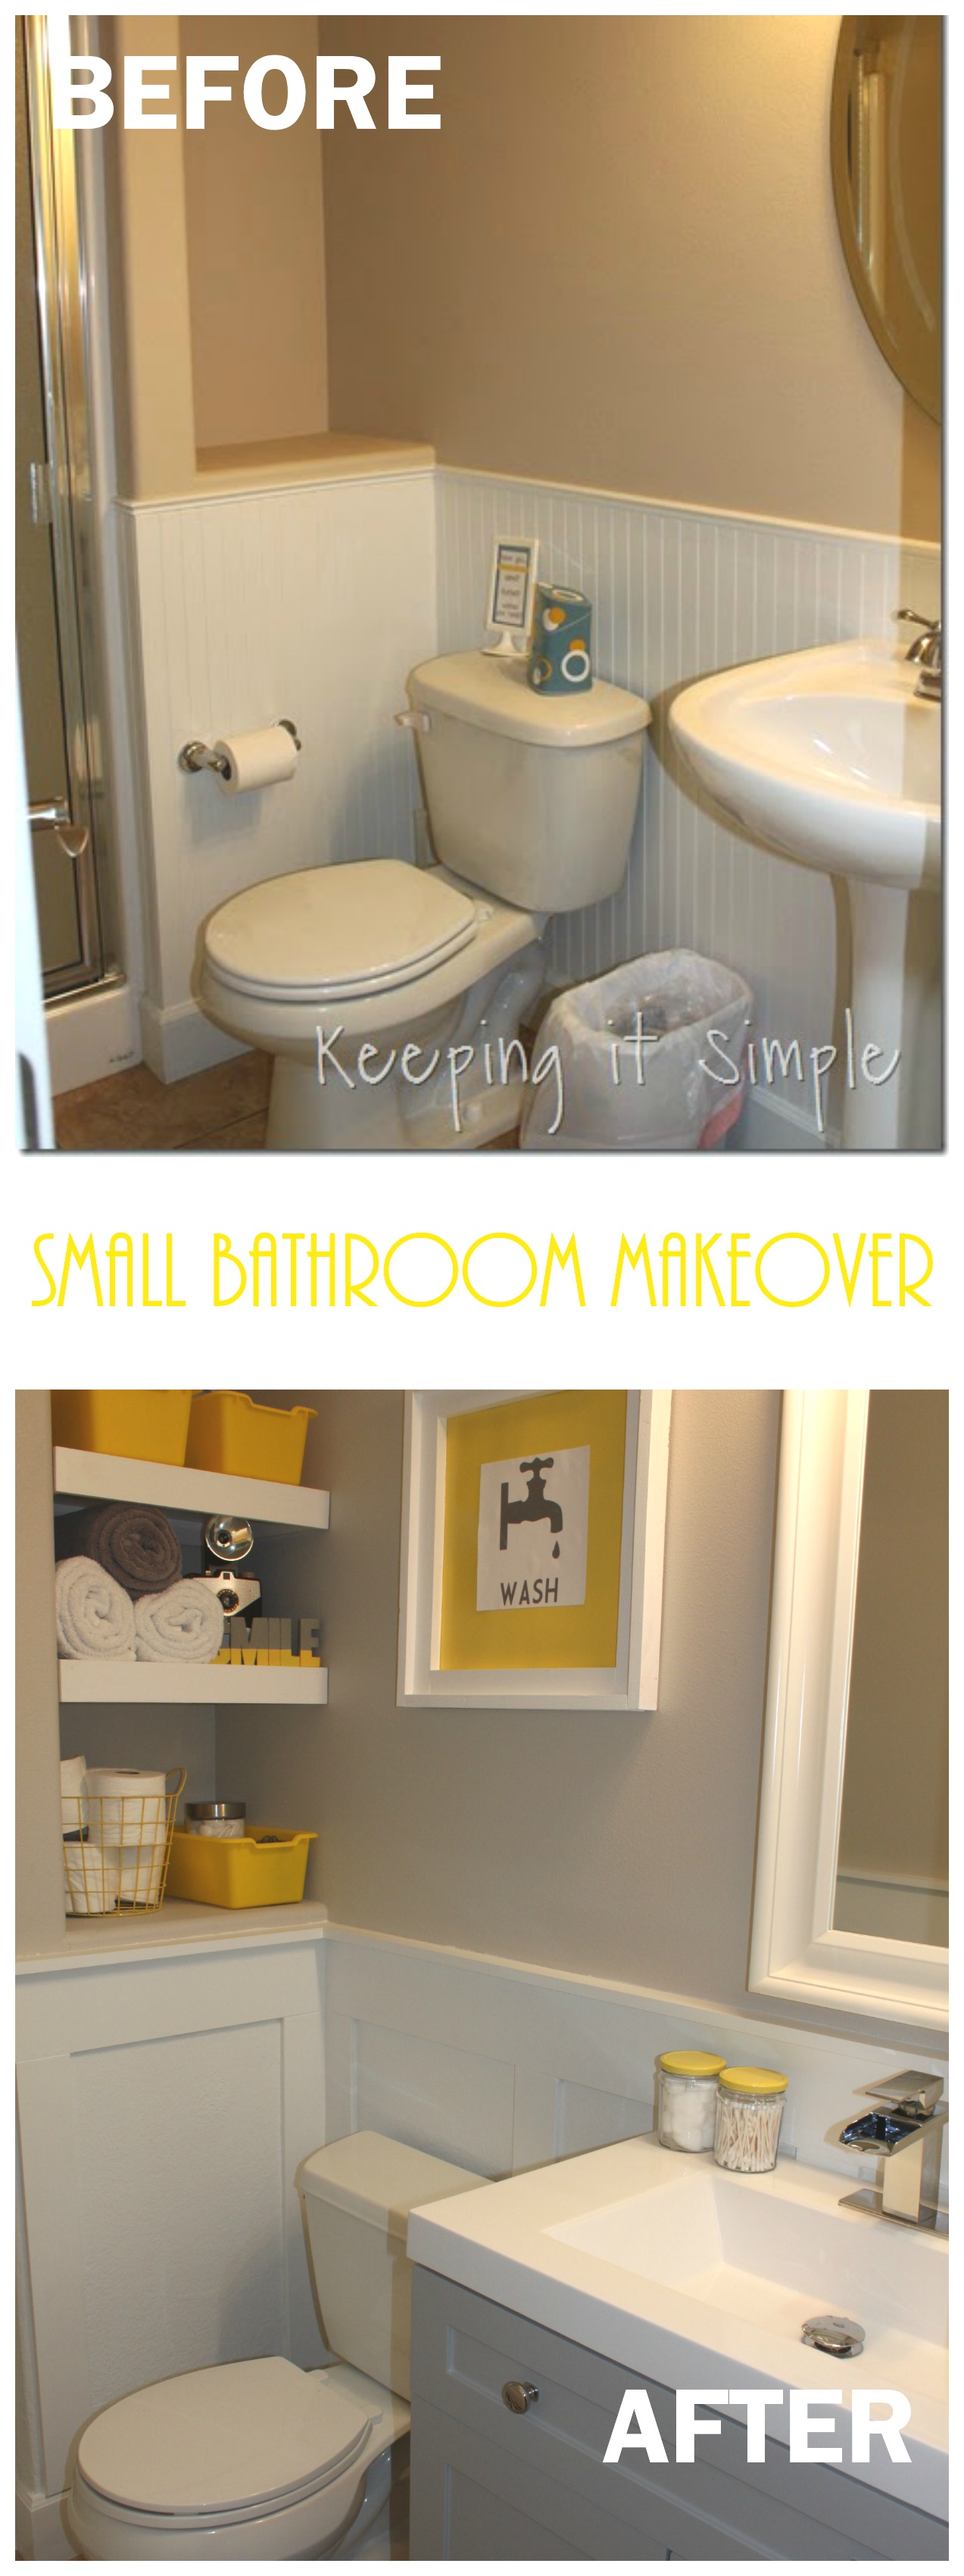 Small Bathroom Remodel Ideas- Bathroom Shelves with Board and Batten on small bathroom makeovers before and after, small bathroom renovations, small bathroom kitchen ideas, small bathroom theme ideas, small bedroom decorating ideas, small bathroom makeovers on a budget, bathroom design ideas, small bathroom organizing ideas, small cabinet storage ideas, small modern bathrooms, bathroom remodeling ideas, bathroom tiles ideas, small bathroom laundry room layout, small bathroom fixtures ideas, rustic guest bathroom ideas, aqua and grey bathroom ideas, small retro bathroom ideas, bathtub for small bathrooms ideas, small bathroom makeovers with beadboard, small bathroom transformation,